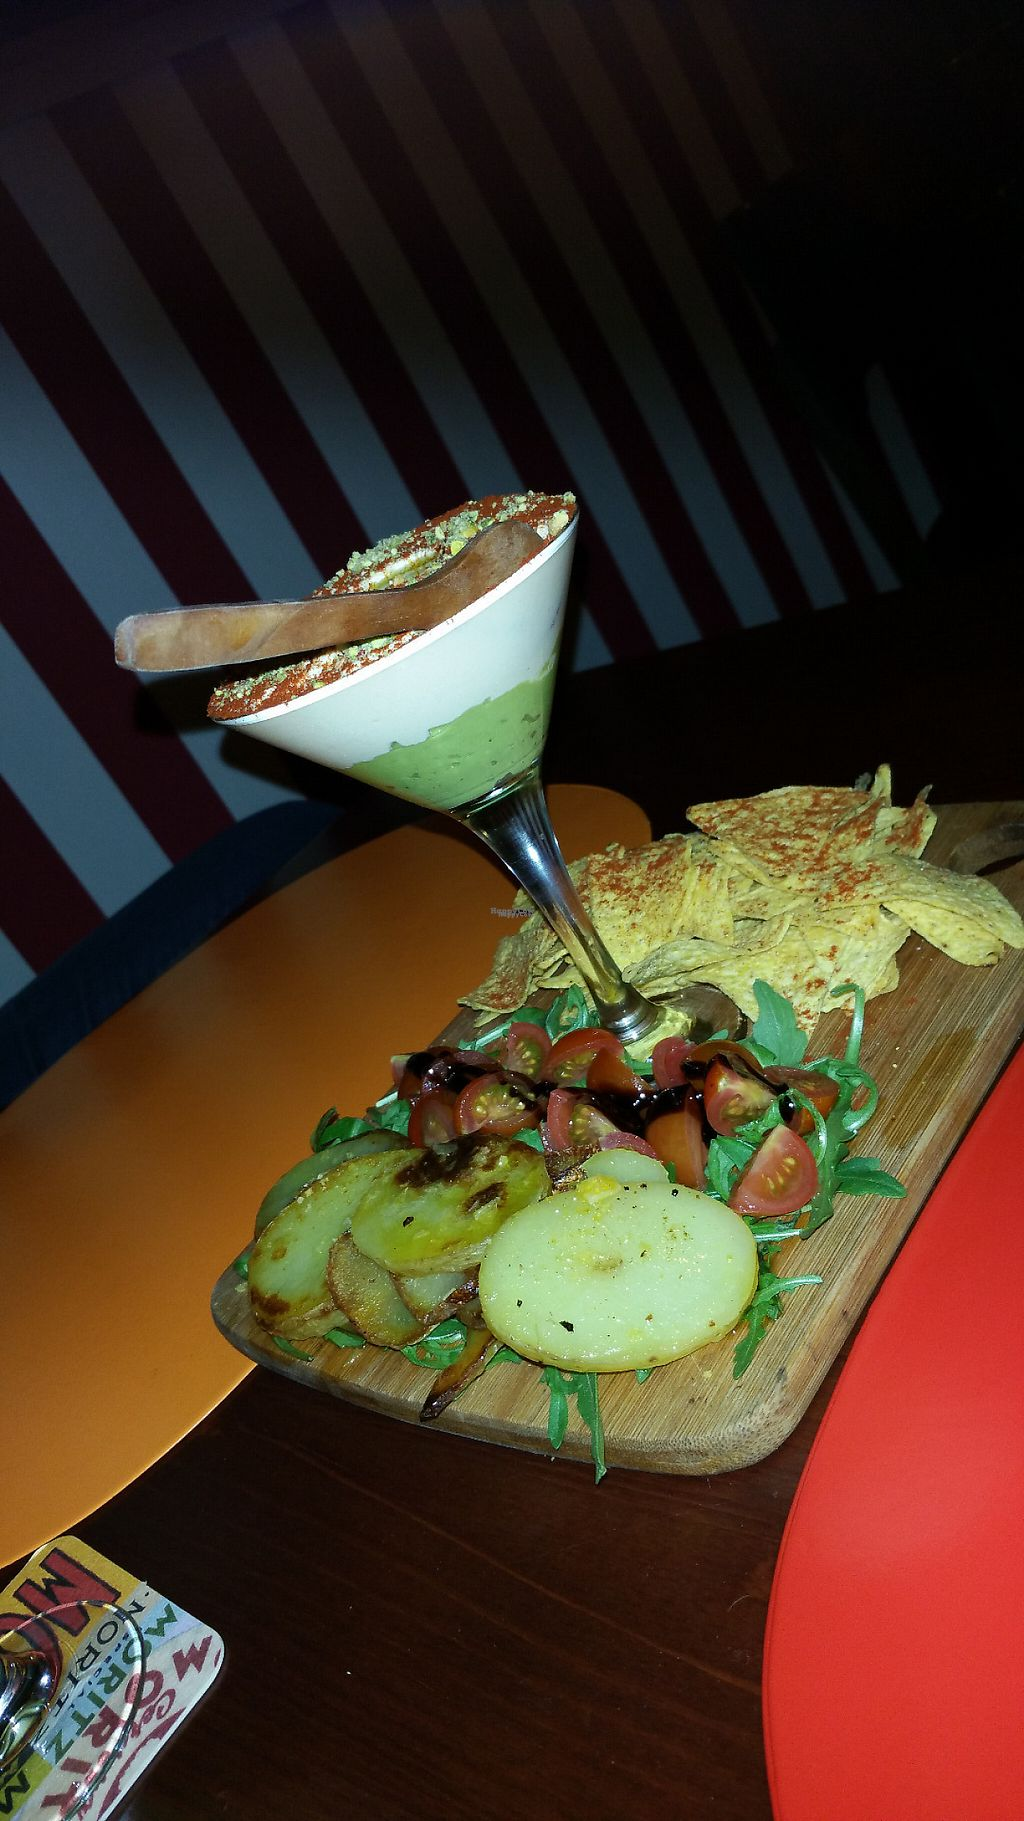 """Photo of Sa Ximbomba  by <a href=""""/members/profile/Mallorcatalks"""">Mallorcatalks</a> <br/>The hummus avocado cocktail - or as I like to call it: the tastiest starter EVER!  <br/> March 10, 2017  - <a href='/contact/abuse/image/83066/234991'>Report</a>"""